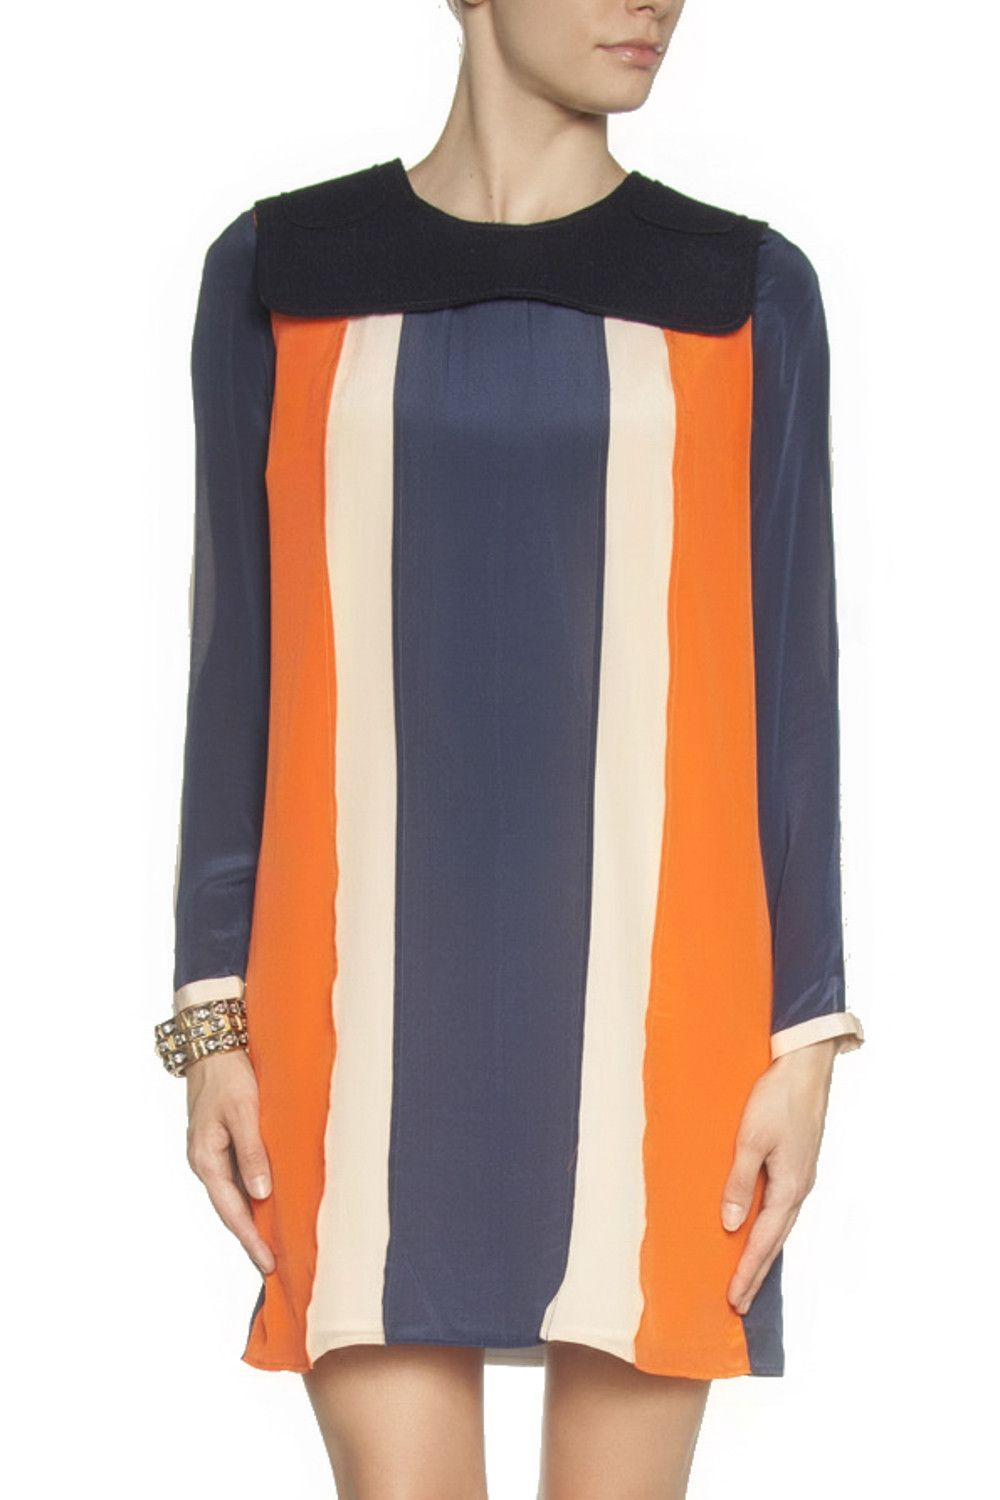 Carrie Color-Block Silk-Crepe Dress: The simple silhouette of the 'Carrie' dress ensures the color-block design stays in focus. This piece will work day or night - simply swap flats for heels.